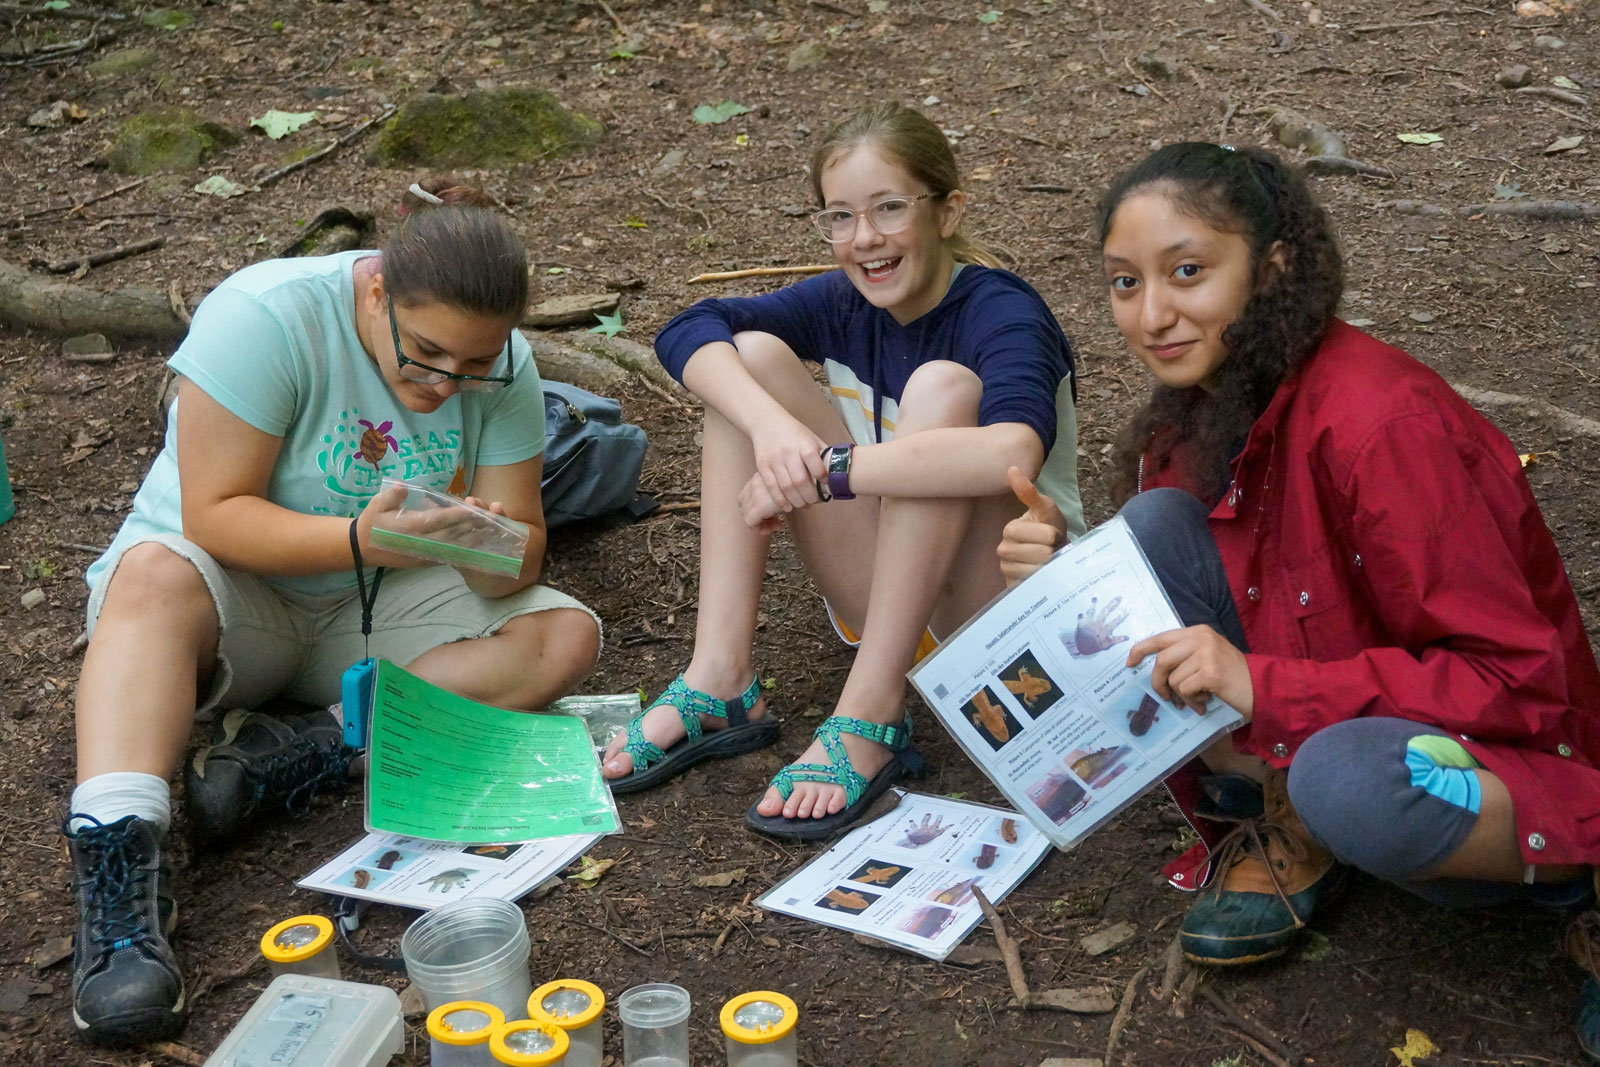 Girls in Science Camp participants study in the forests of the Smokies